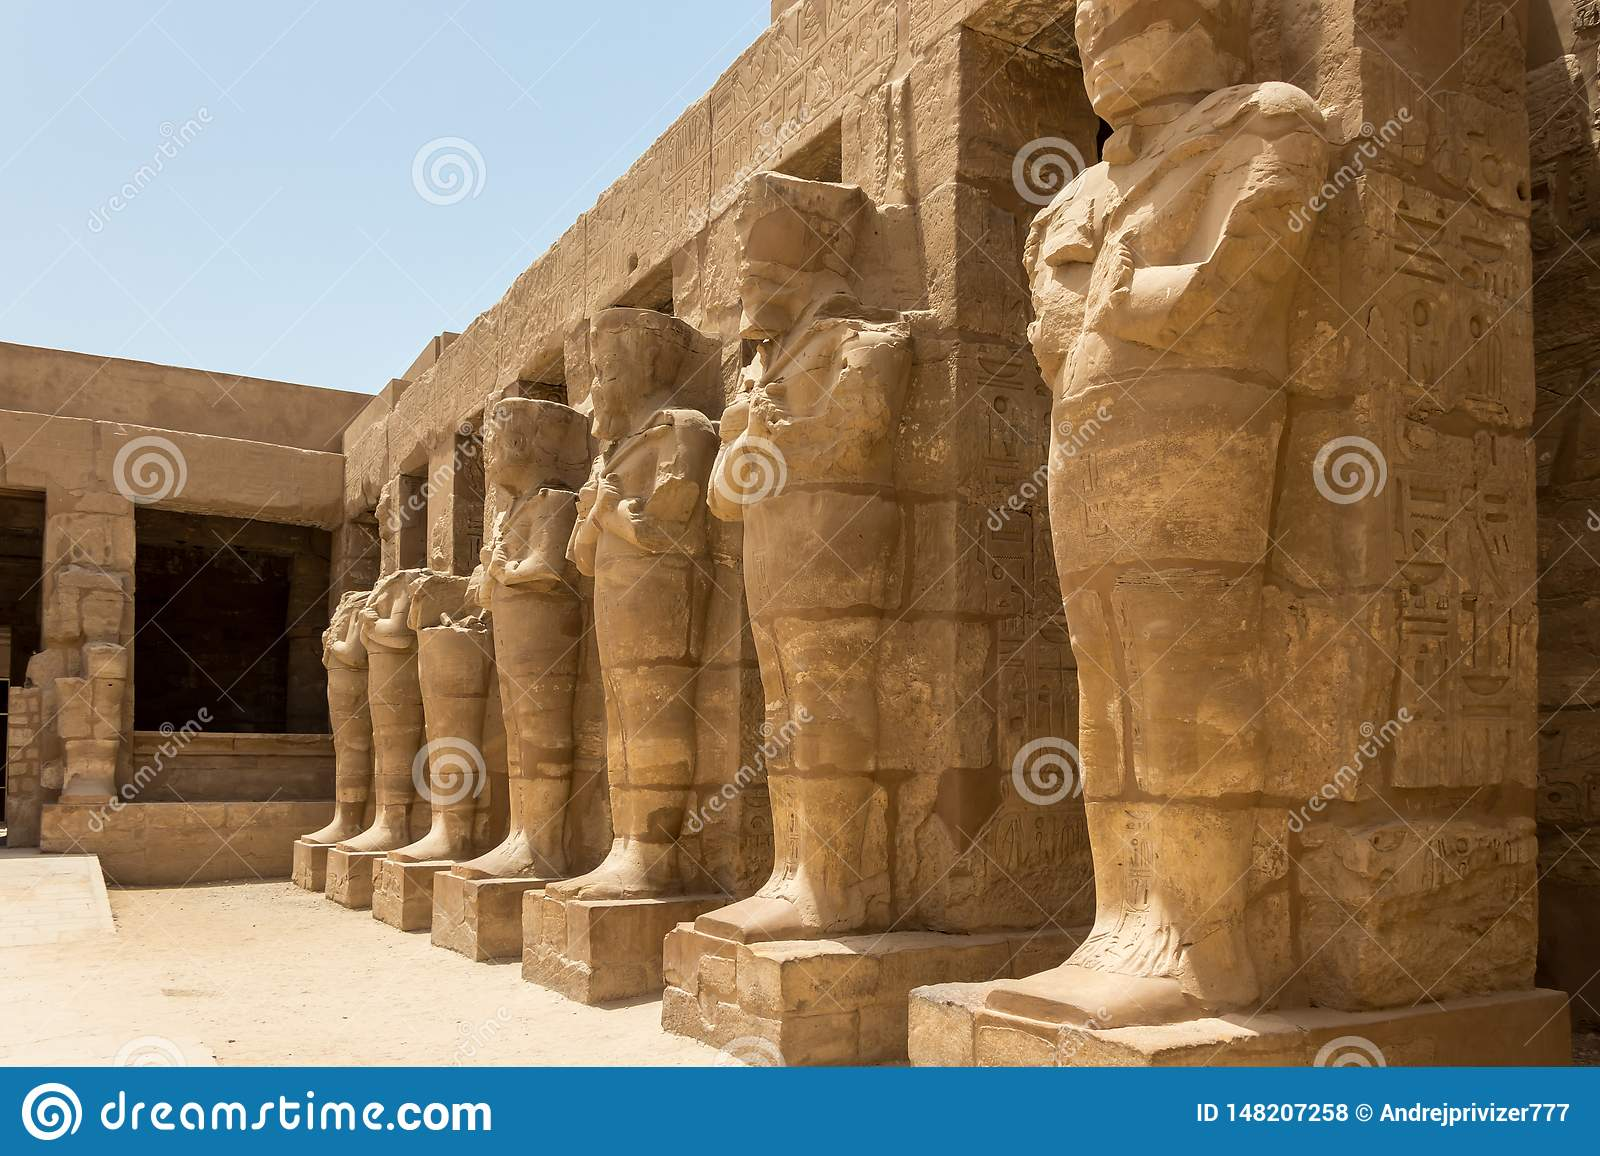 Temple Of Ramses 3th - Rock Statues, The Ancient City Of ... on ancient egypt red sea map, thebes africa, thebes in egypt, mongolia on world map, city of thebes map,